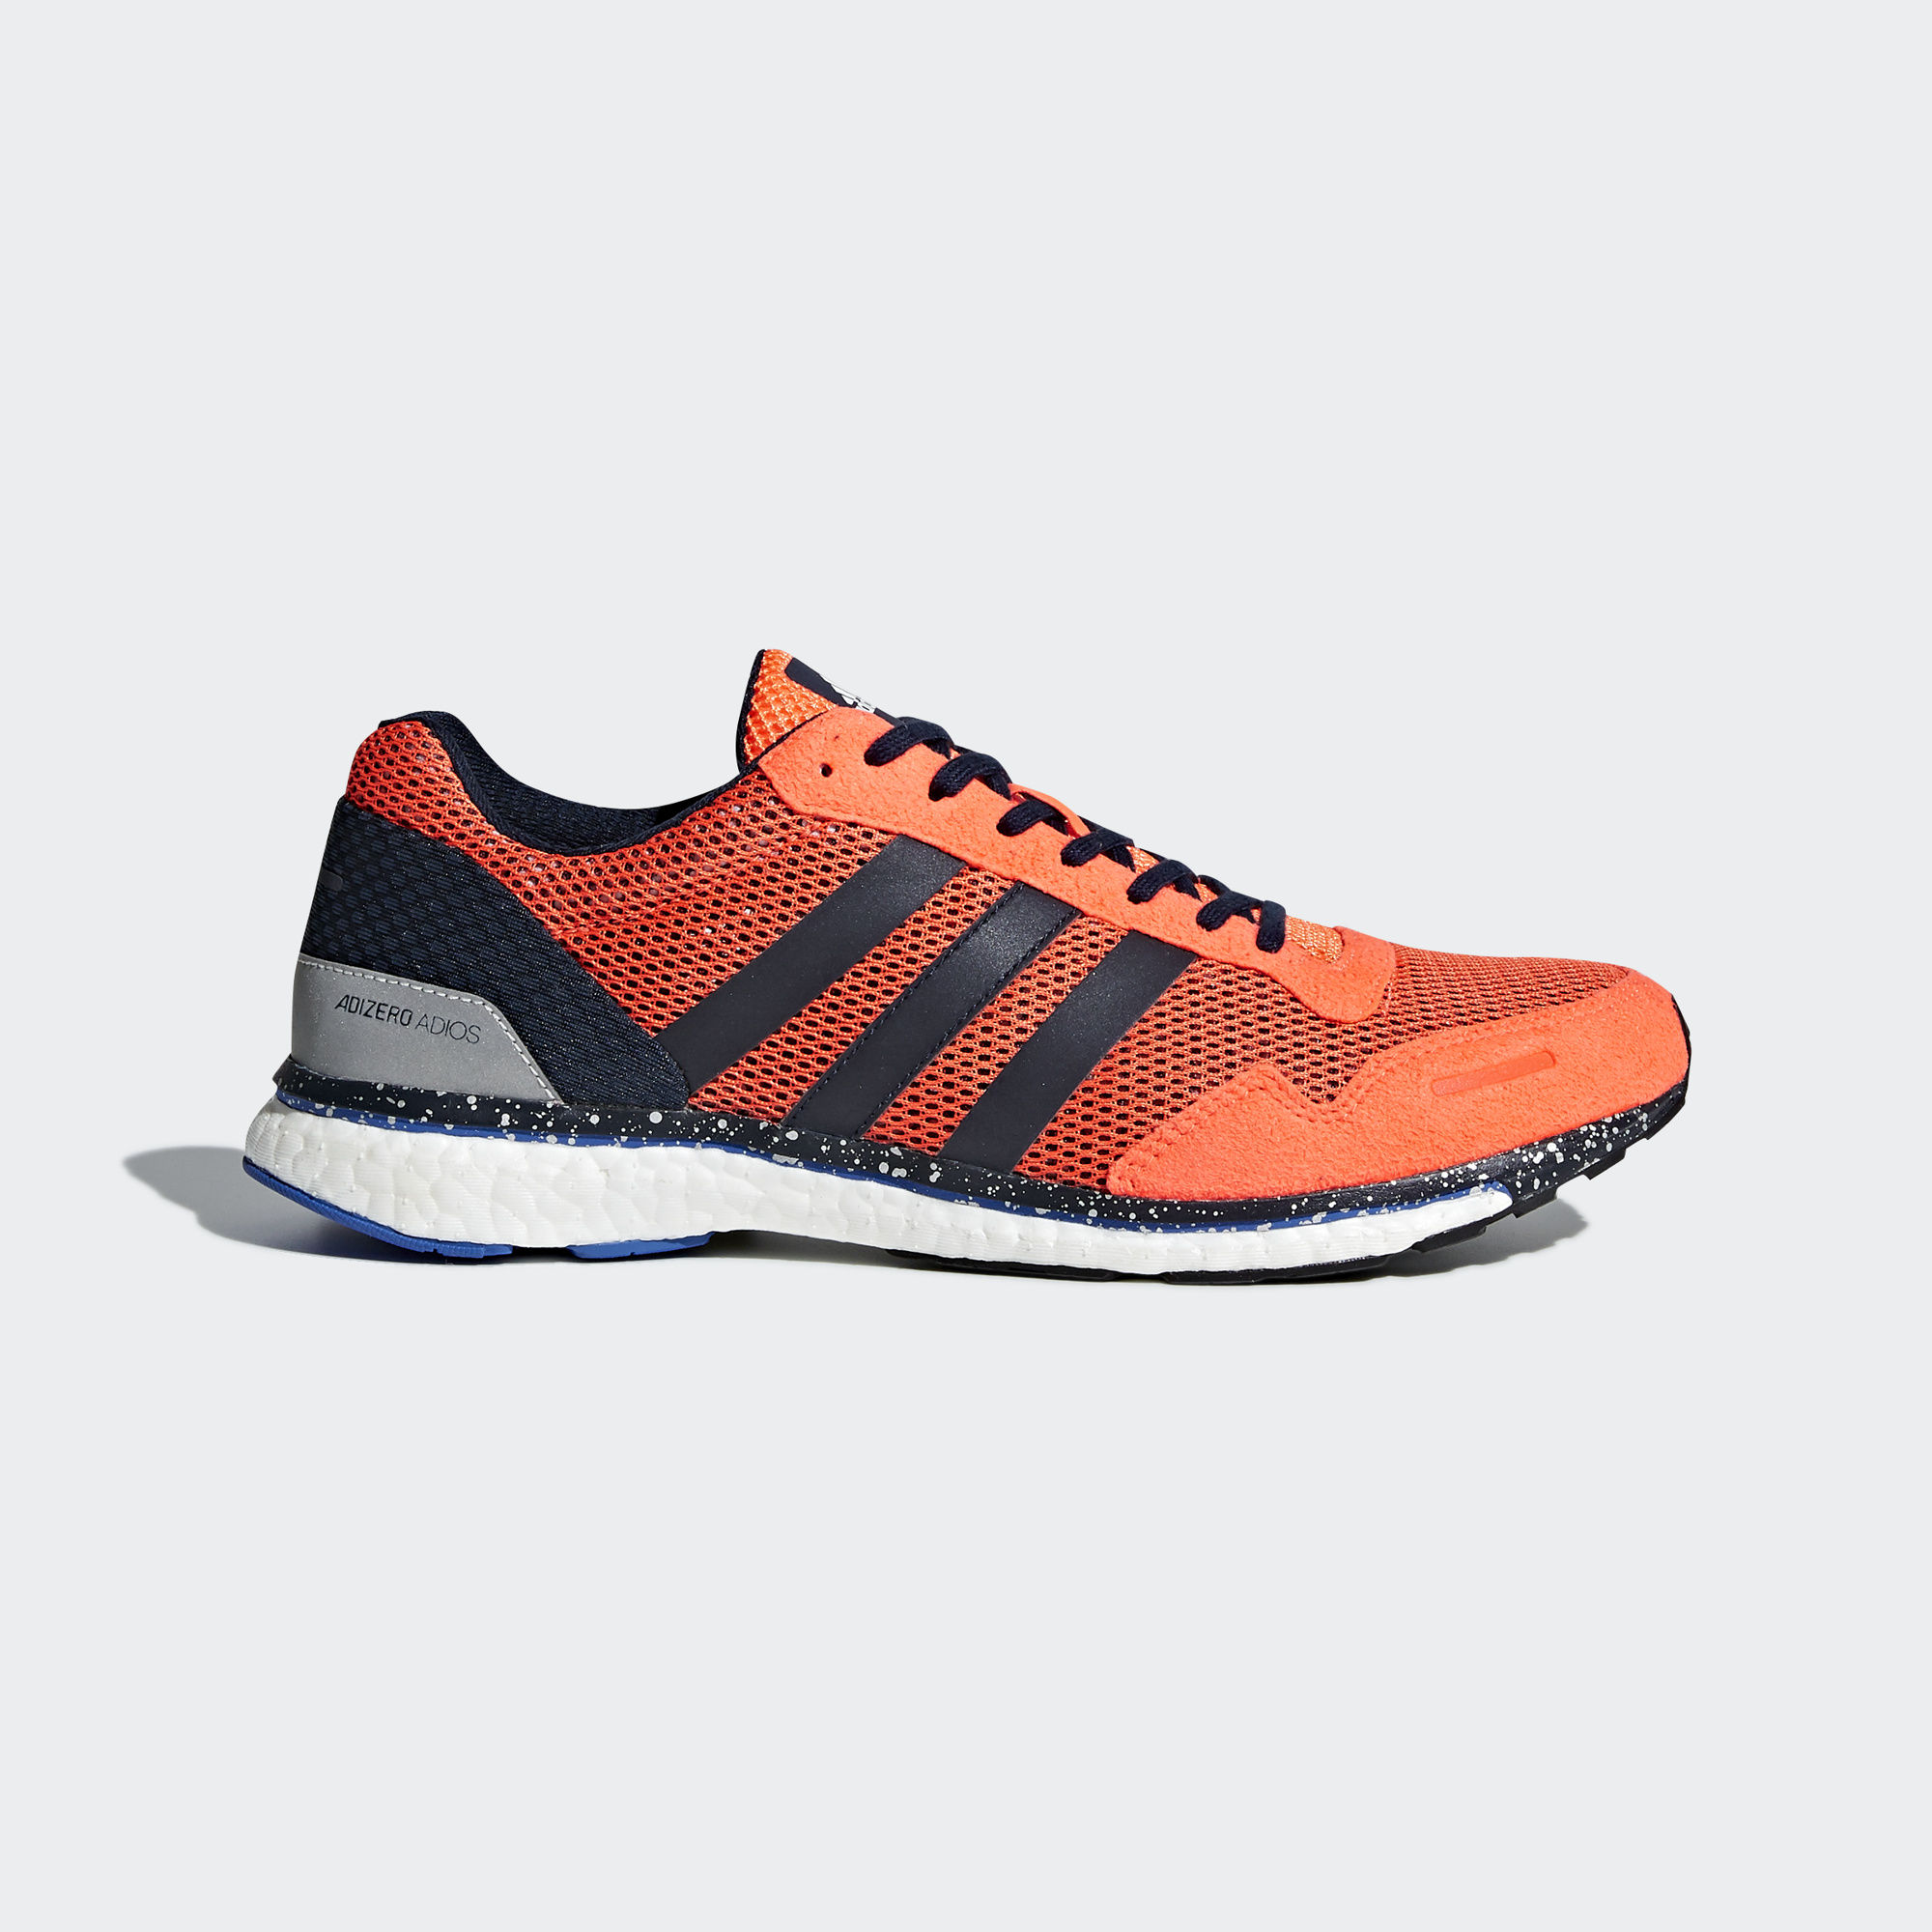 11 Best Adidas Running Shoes for 2018